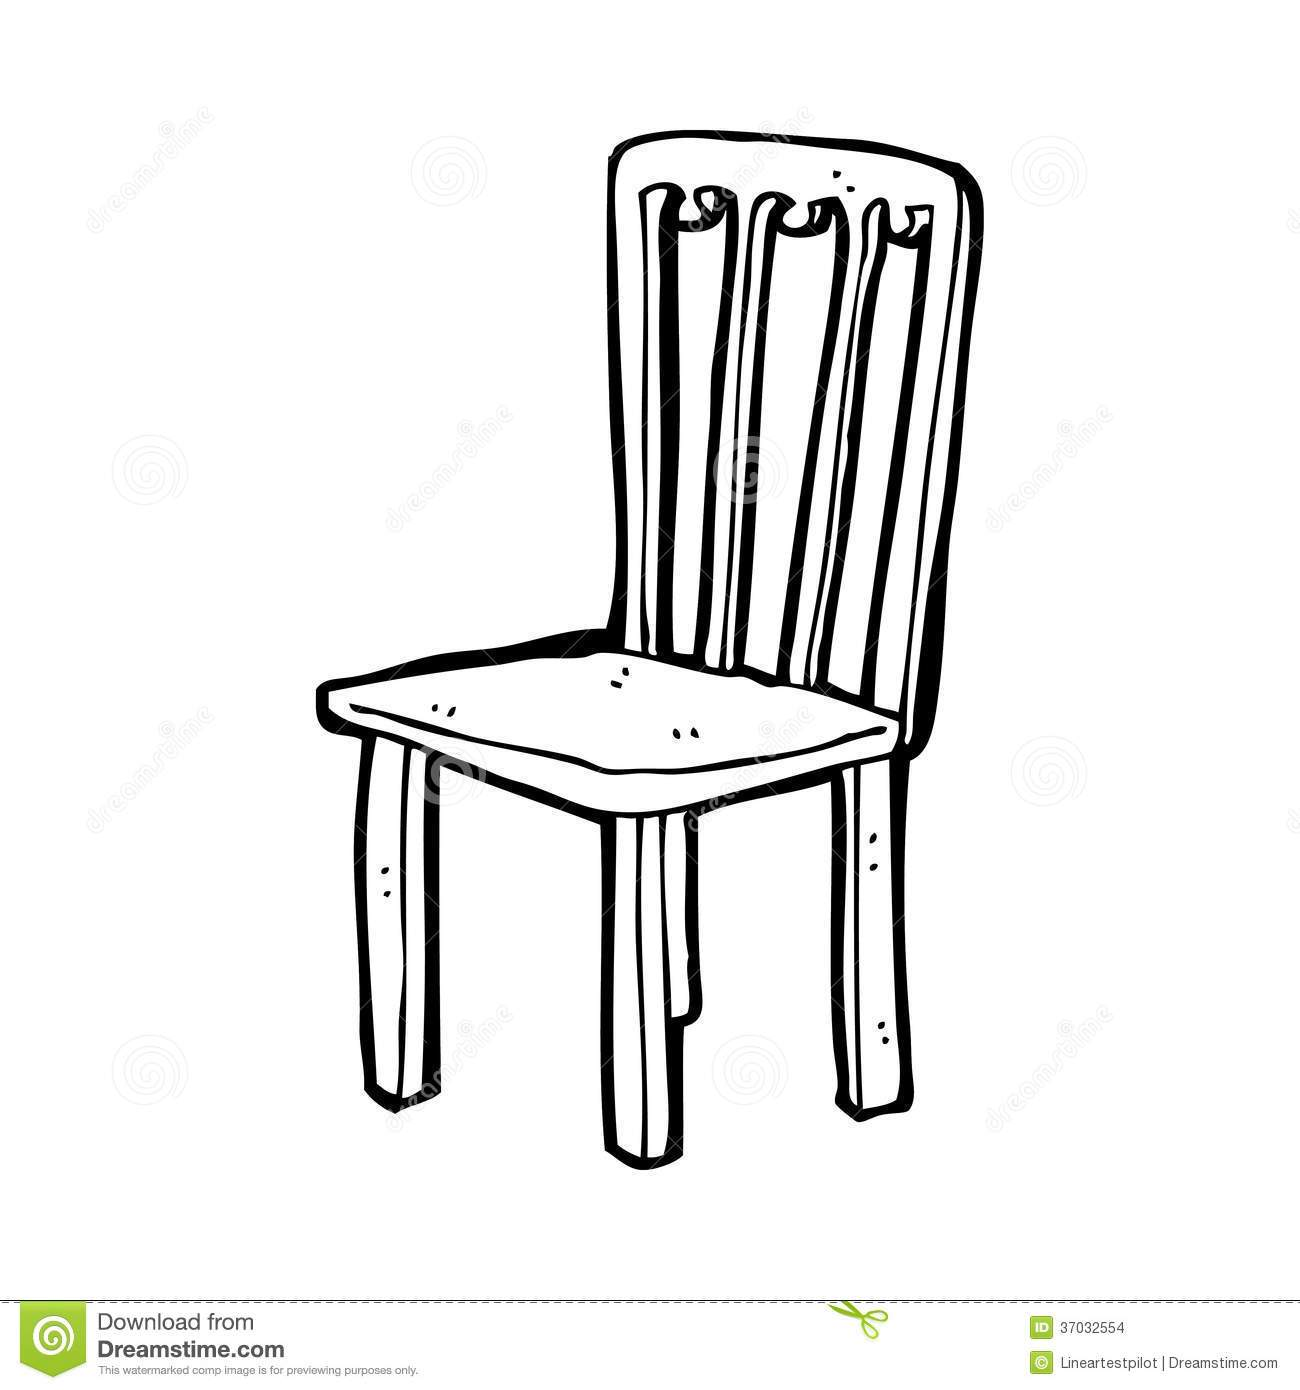 Chair white clipart picture stock Wooden chair clipart black and white 5 » Clipart Portal picture stock